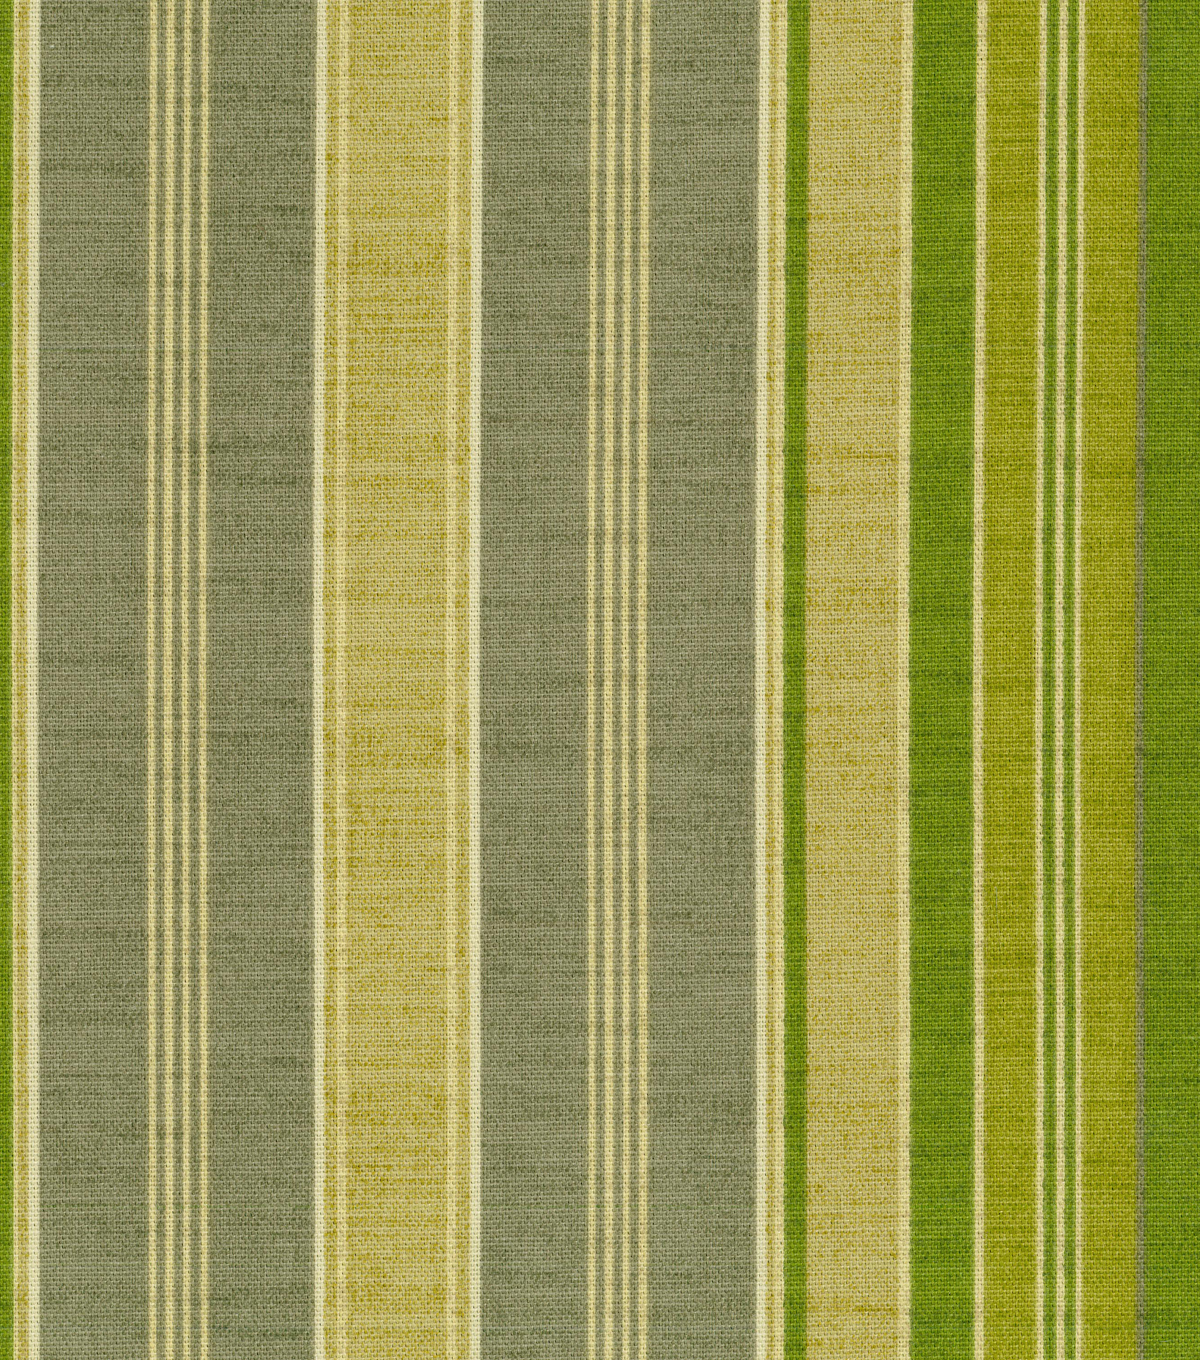 Home Decor 8\u0022x8\u0022 Fabric Swatch-Tommy Bahama Vera Cruz Fossil